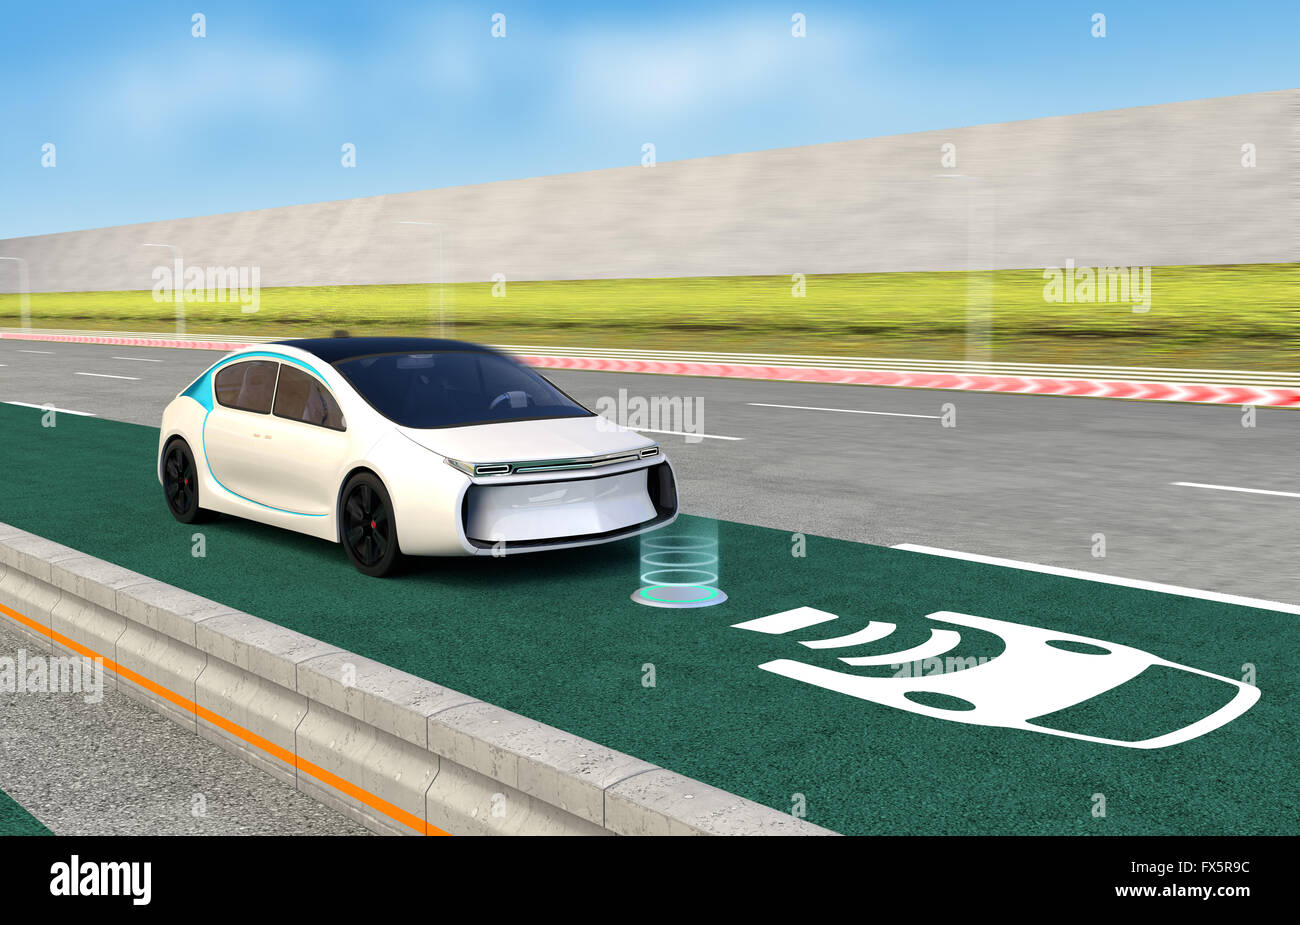 How To Charge A Car Battery By Driving